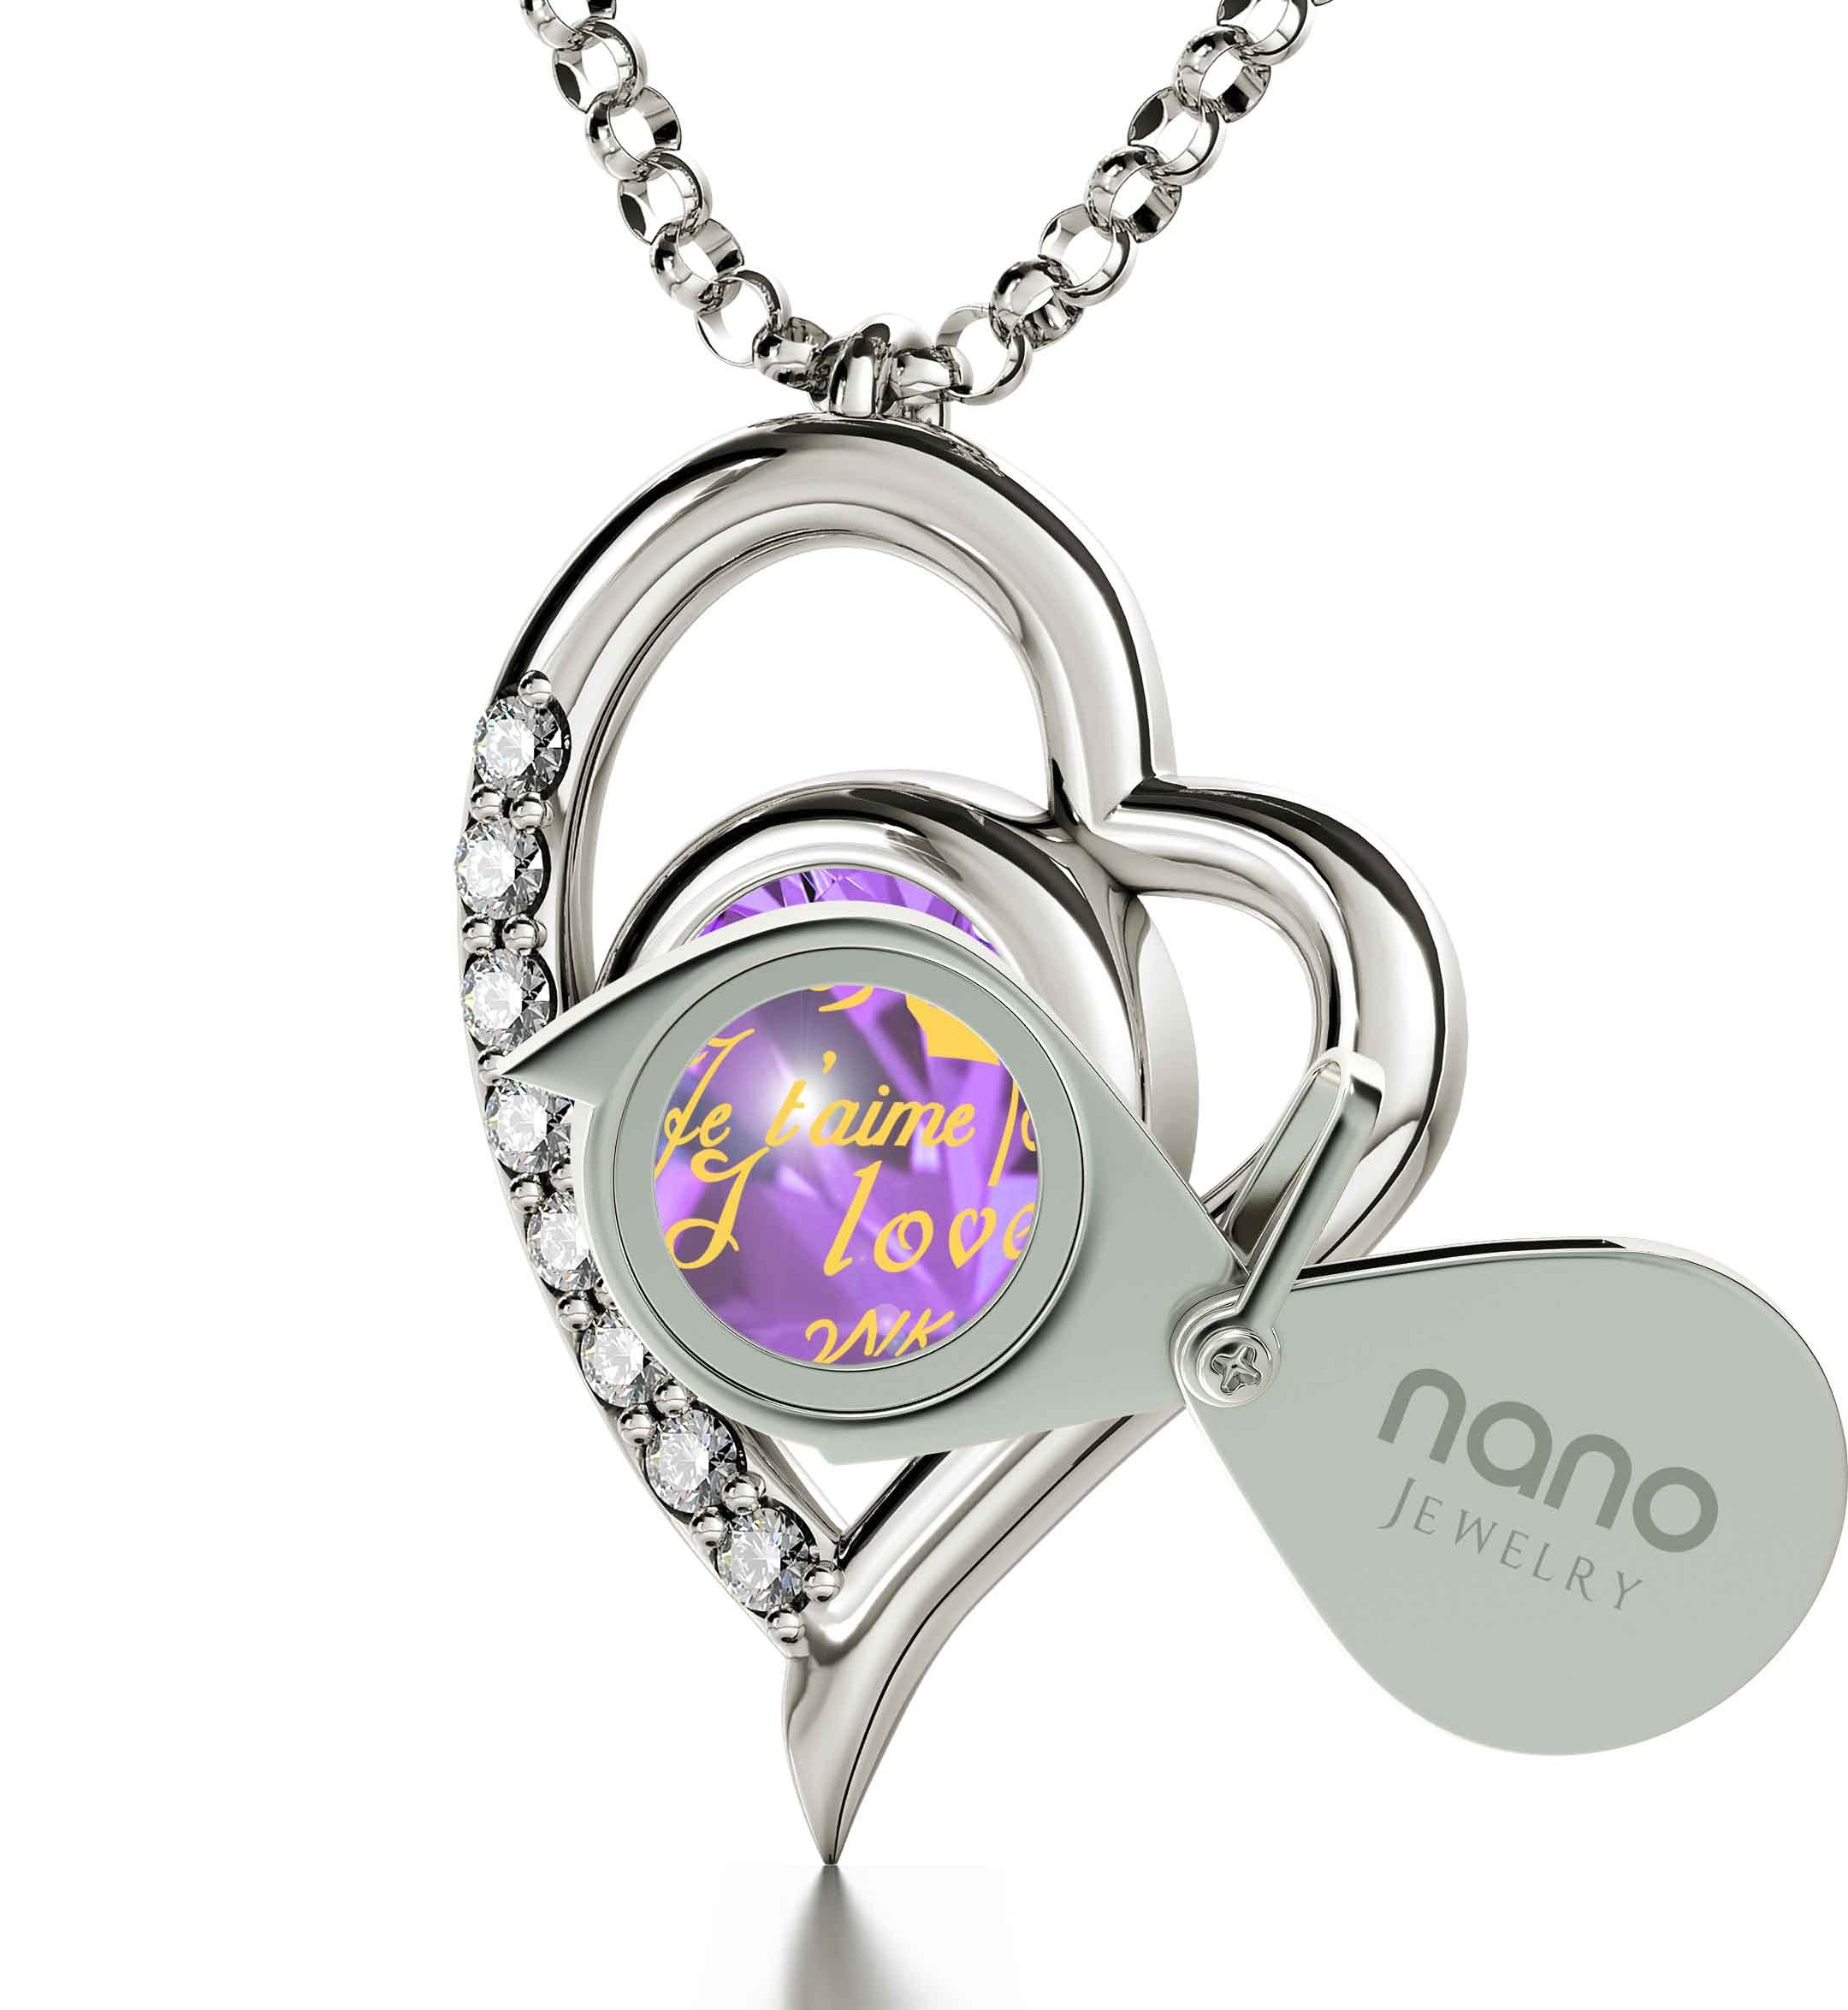 925 Sterling Silver Heart Pendant Necklace I Love You 12 Languages 24k Gold Inscribed Violet Crystal, 18'' by Nano Jewelry (Image #2)